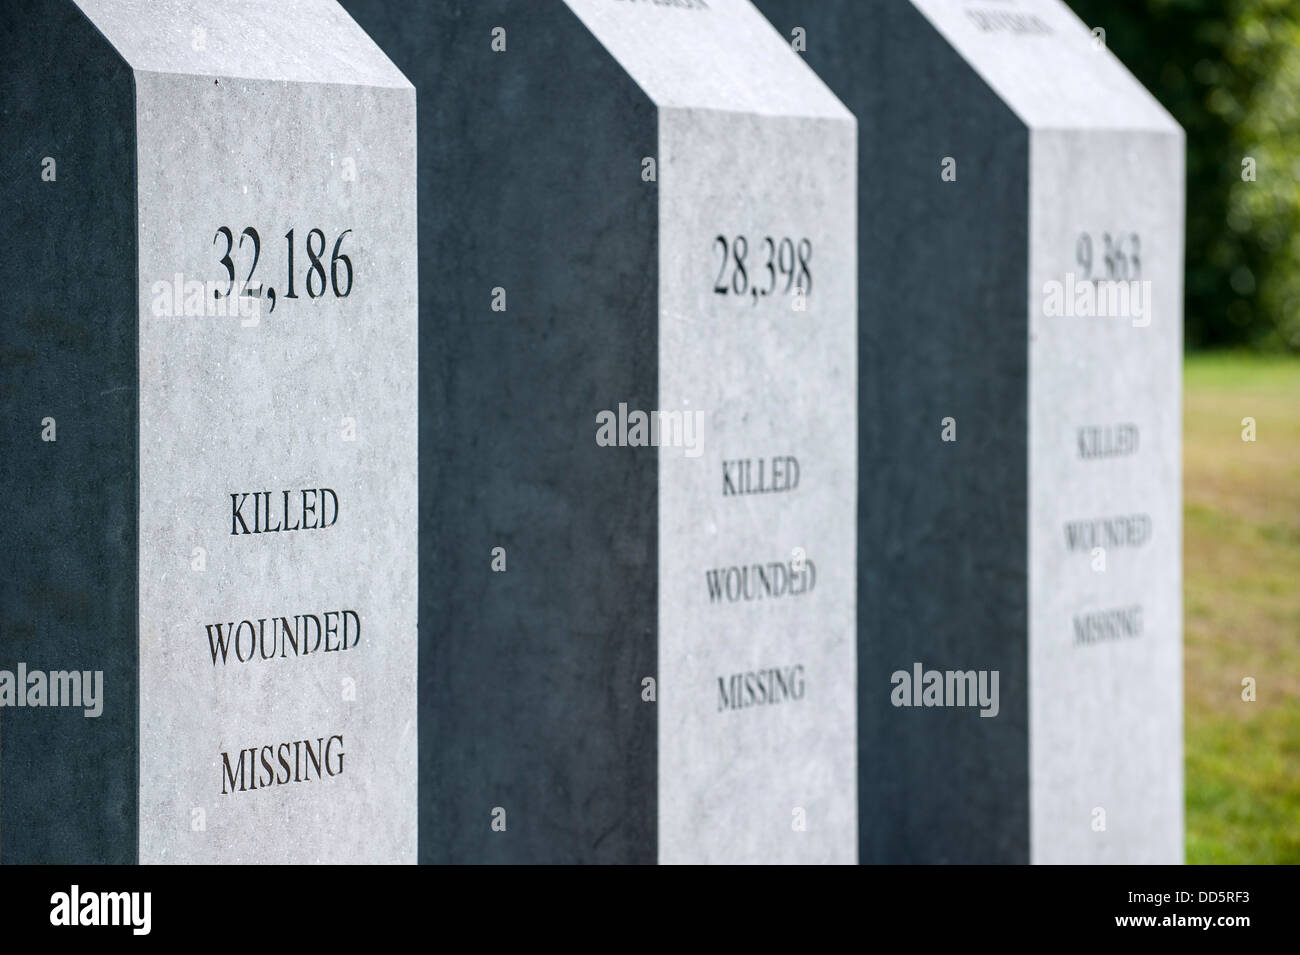 Pillars showing casualties numbers at Irish Peace Park, First World War One monument at Mesen / Messines, West Flanders, - Stock Image